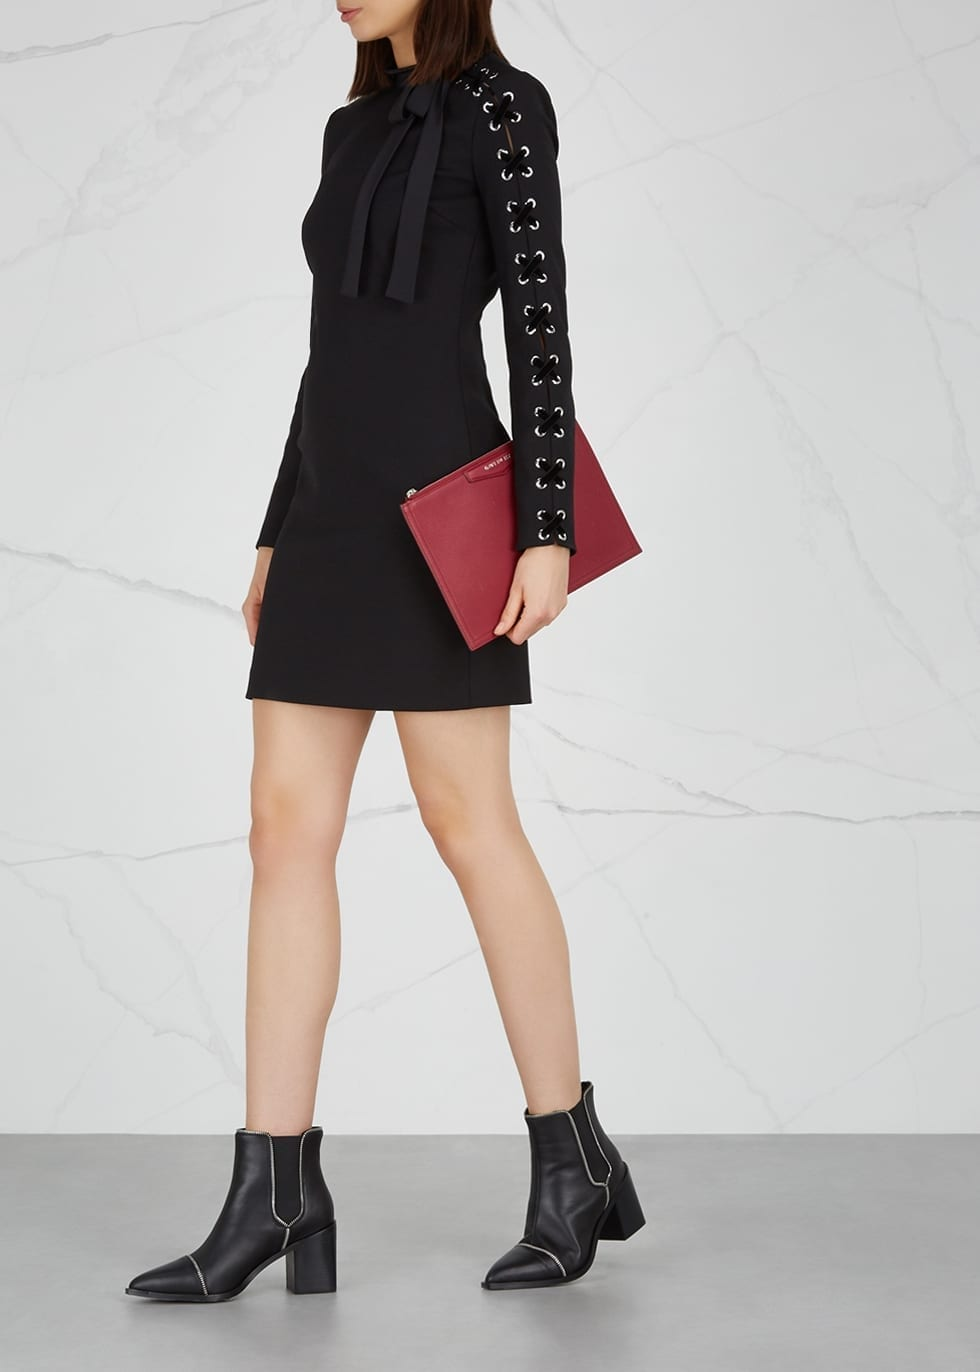 RED VALENTINO Lace-up Black Dress